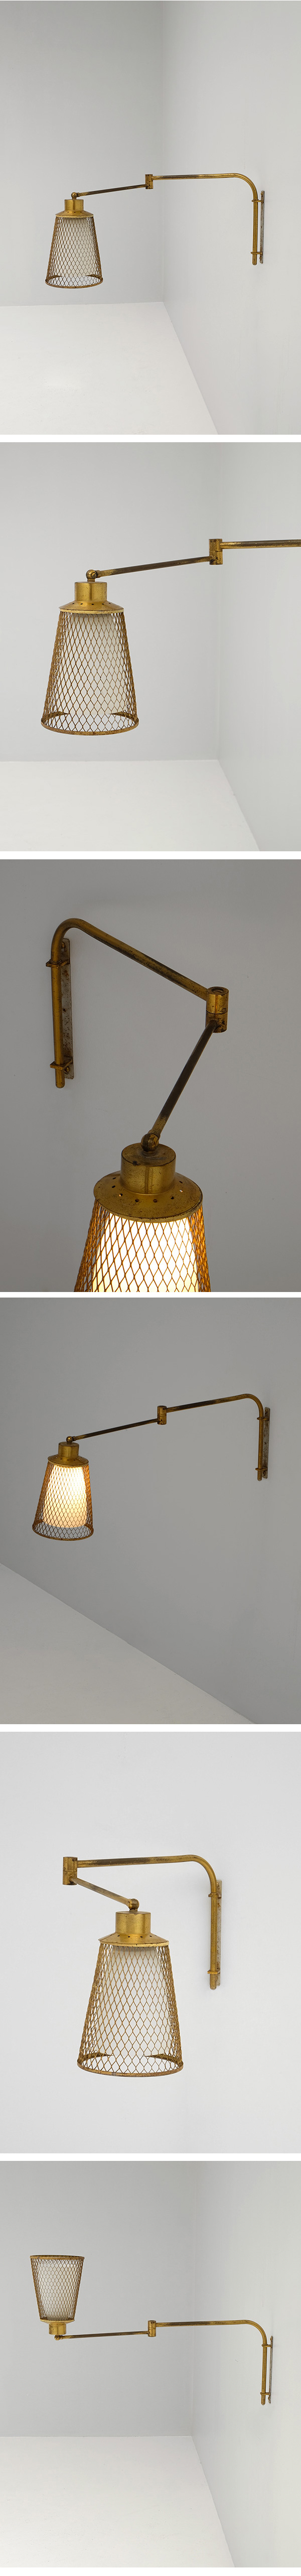 City Furniture Fifties swivel reading / wall lamp